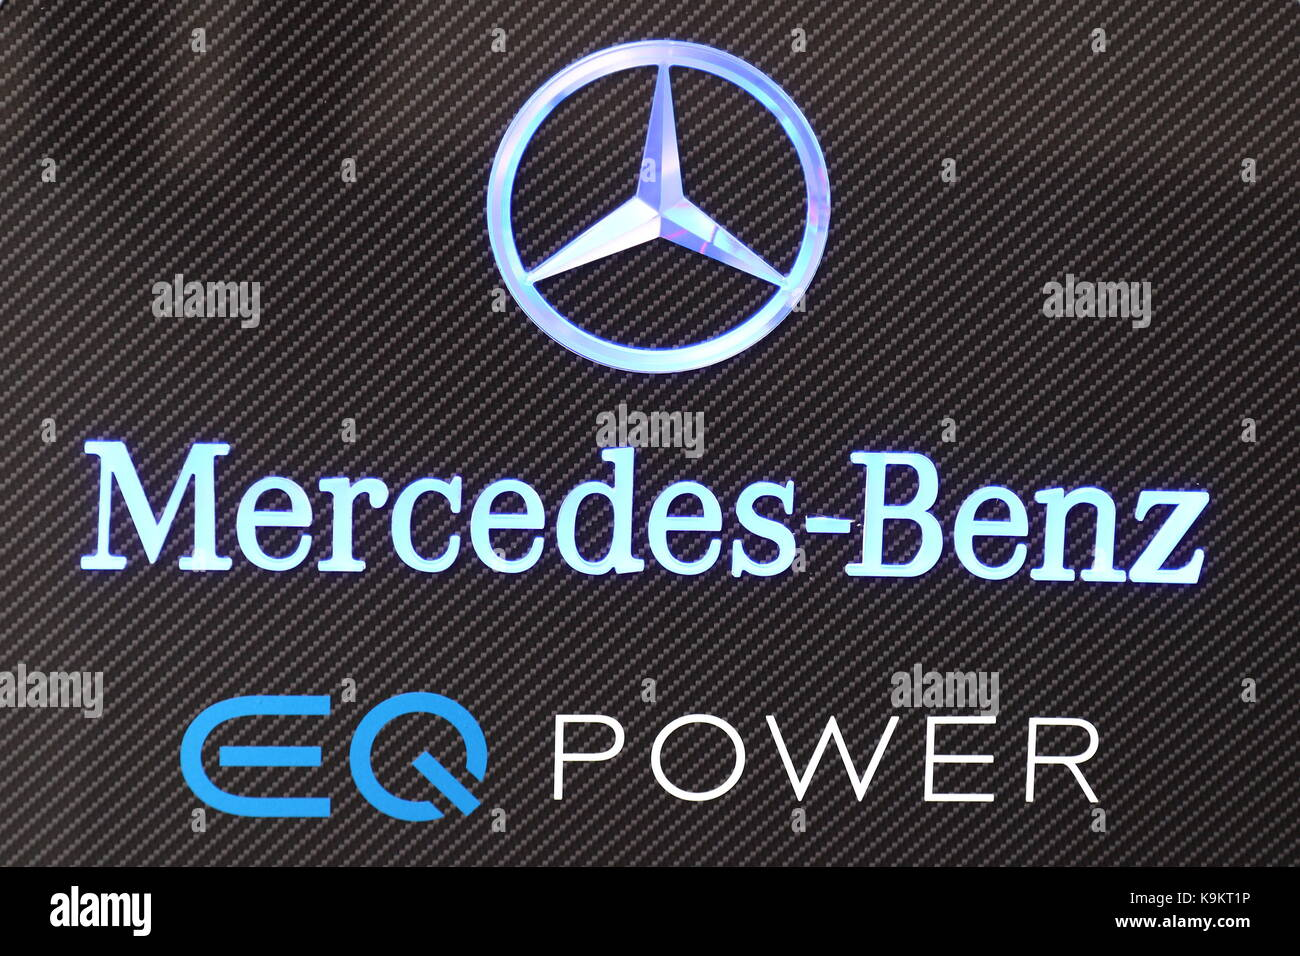 Mercedes benz logo stock photos mercedes benz logo stock for Mercedes benz brand image